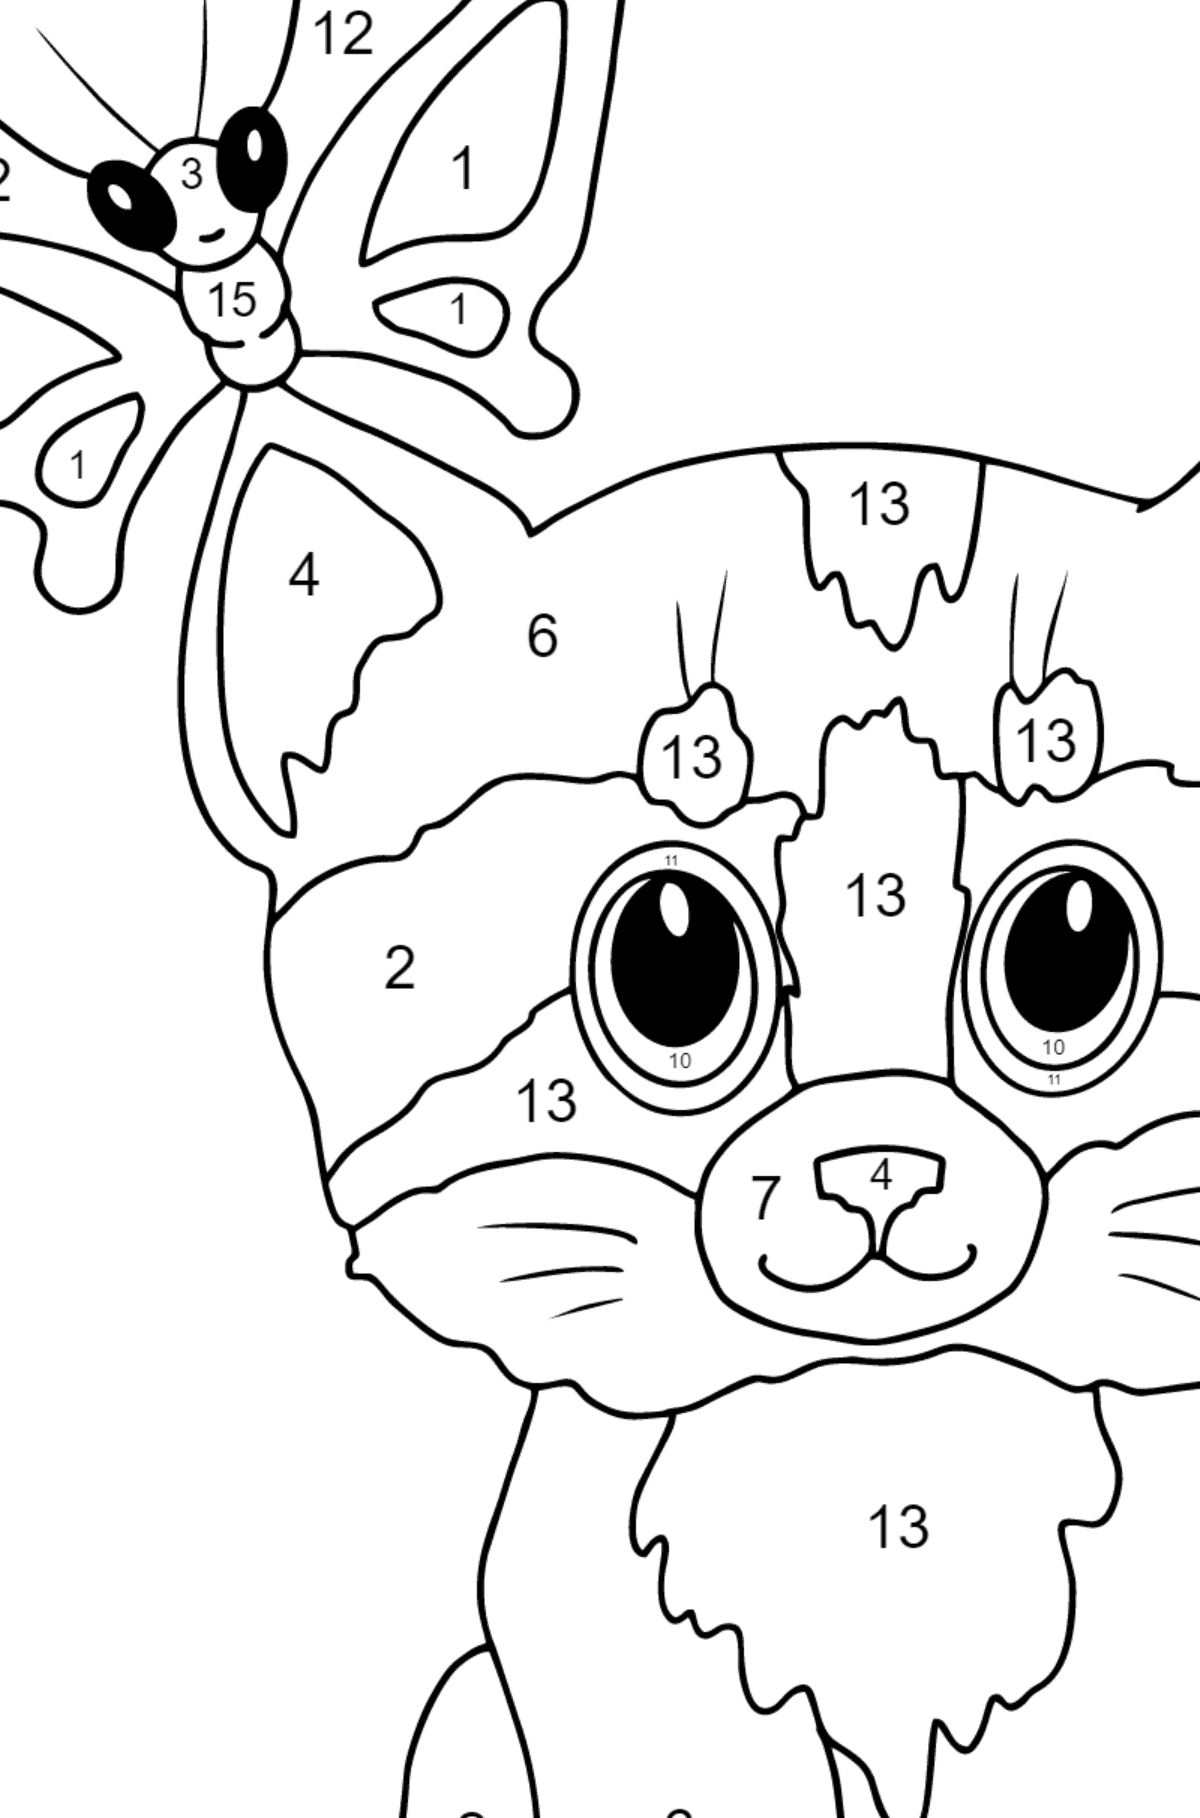 Coloring Page - A Cat with a Butterfly on Its Ear - Coloring by Numbers for Kids